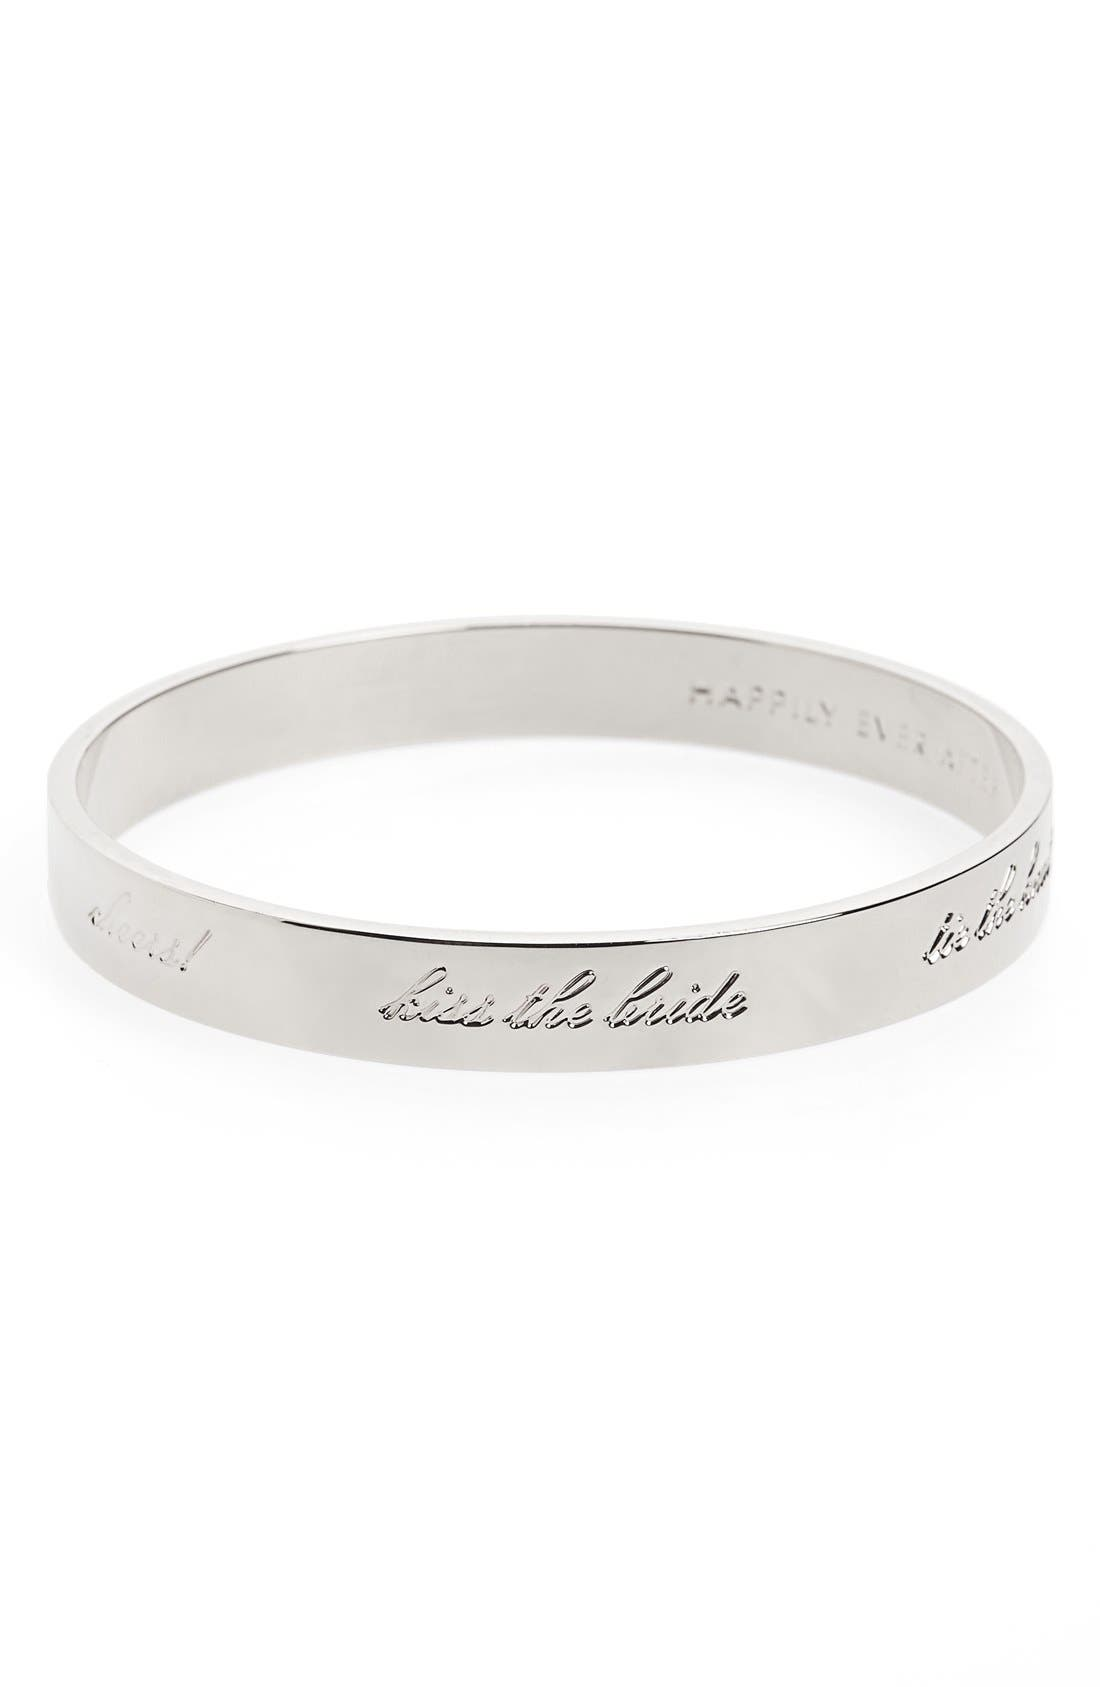 'idiom - happily ever after' bangle,                             Main thumbnail 1, color,                             BRIDE- SILVER